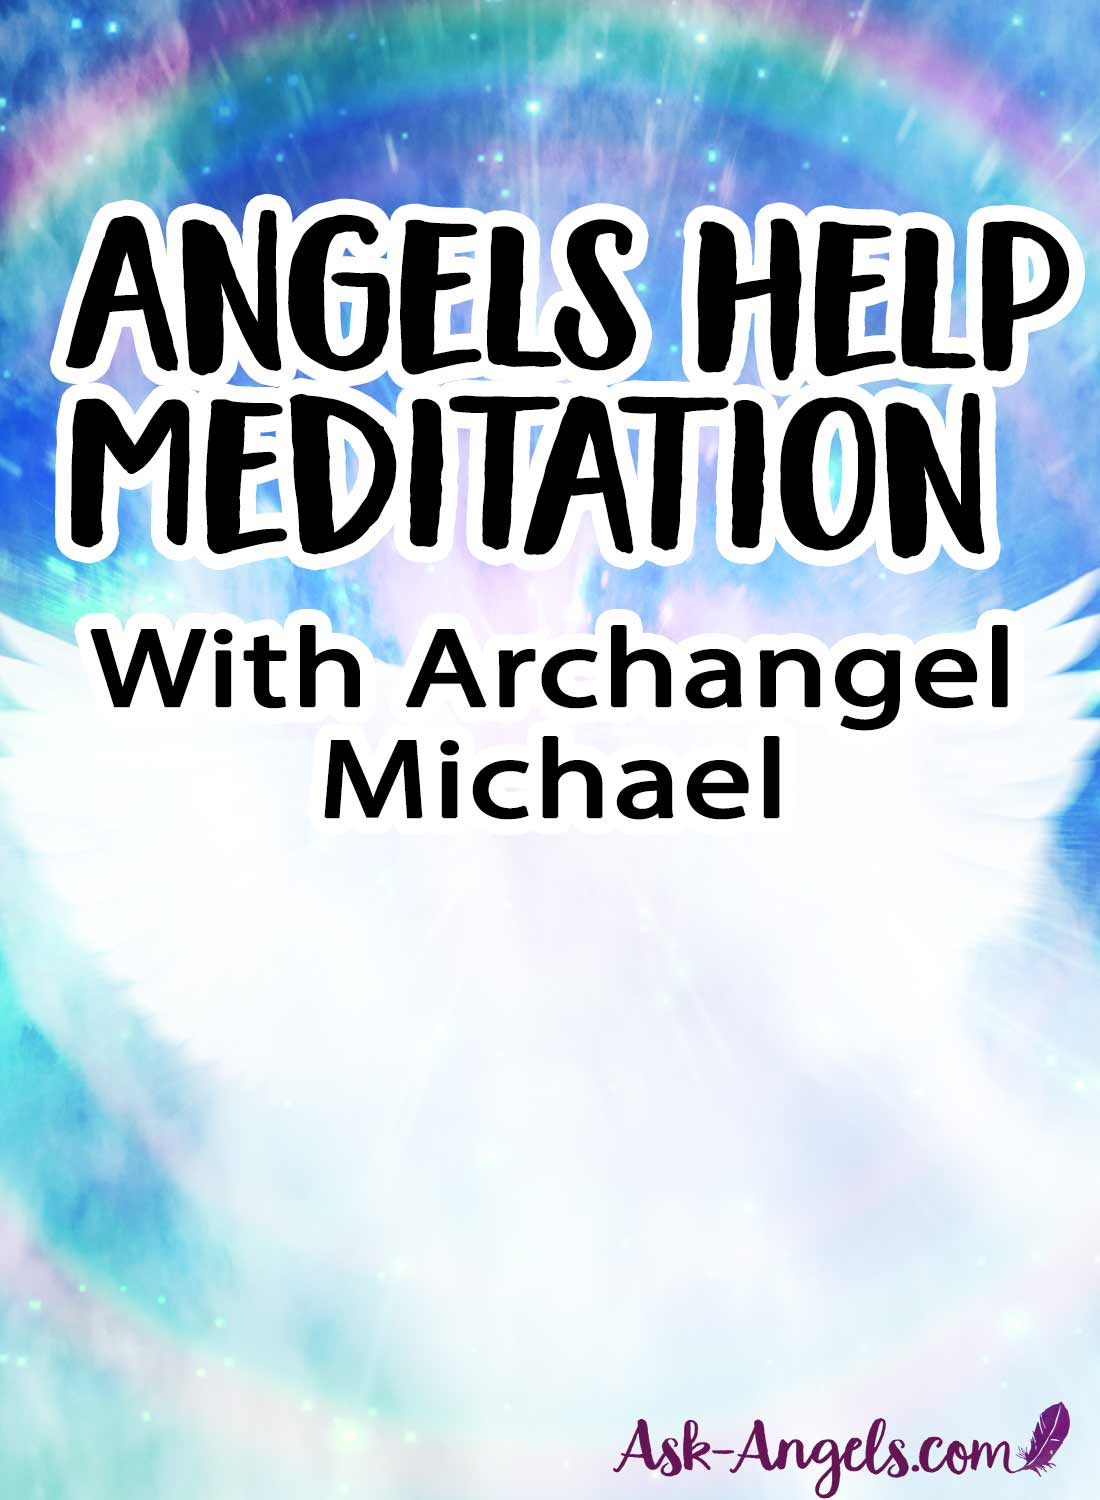 Angels Help Meditation with Archangel Michael